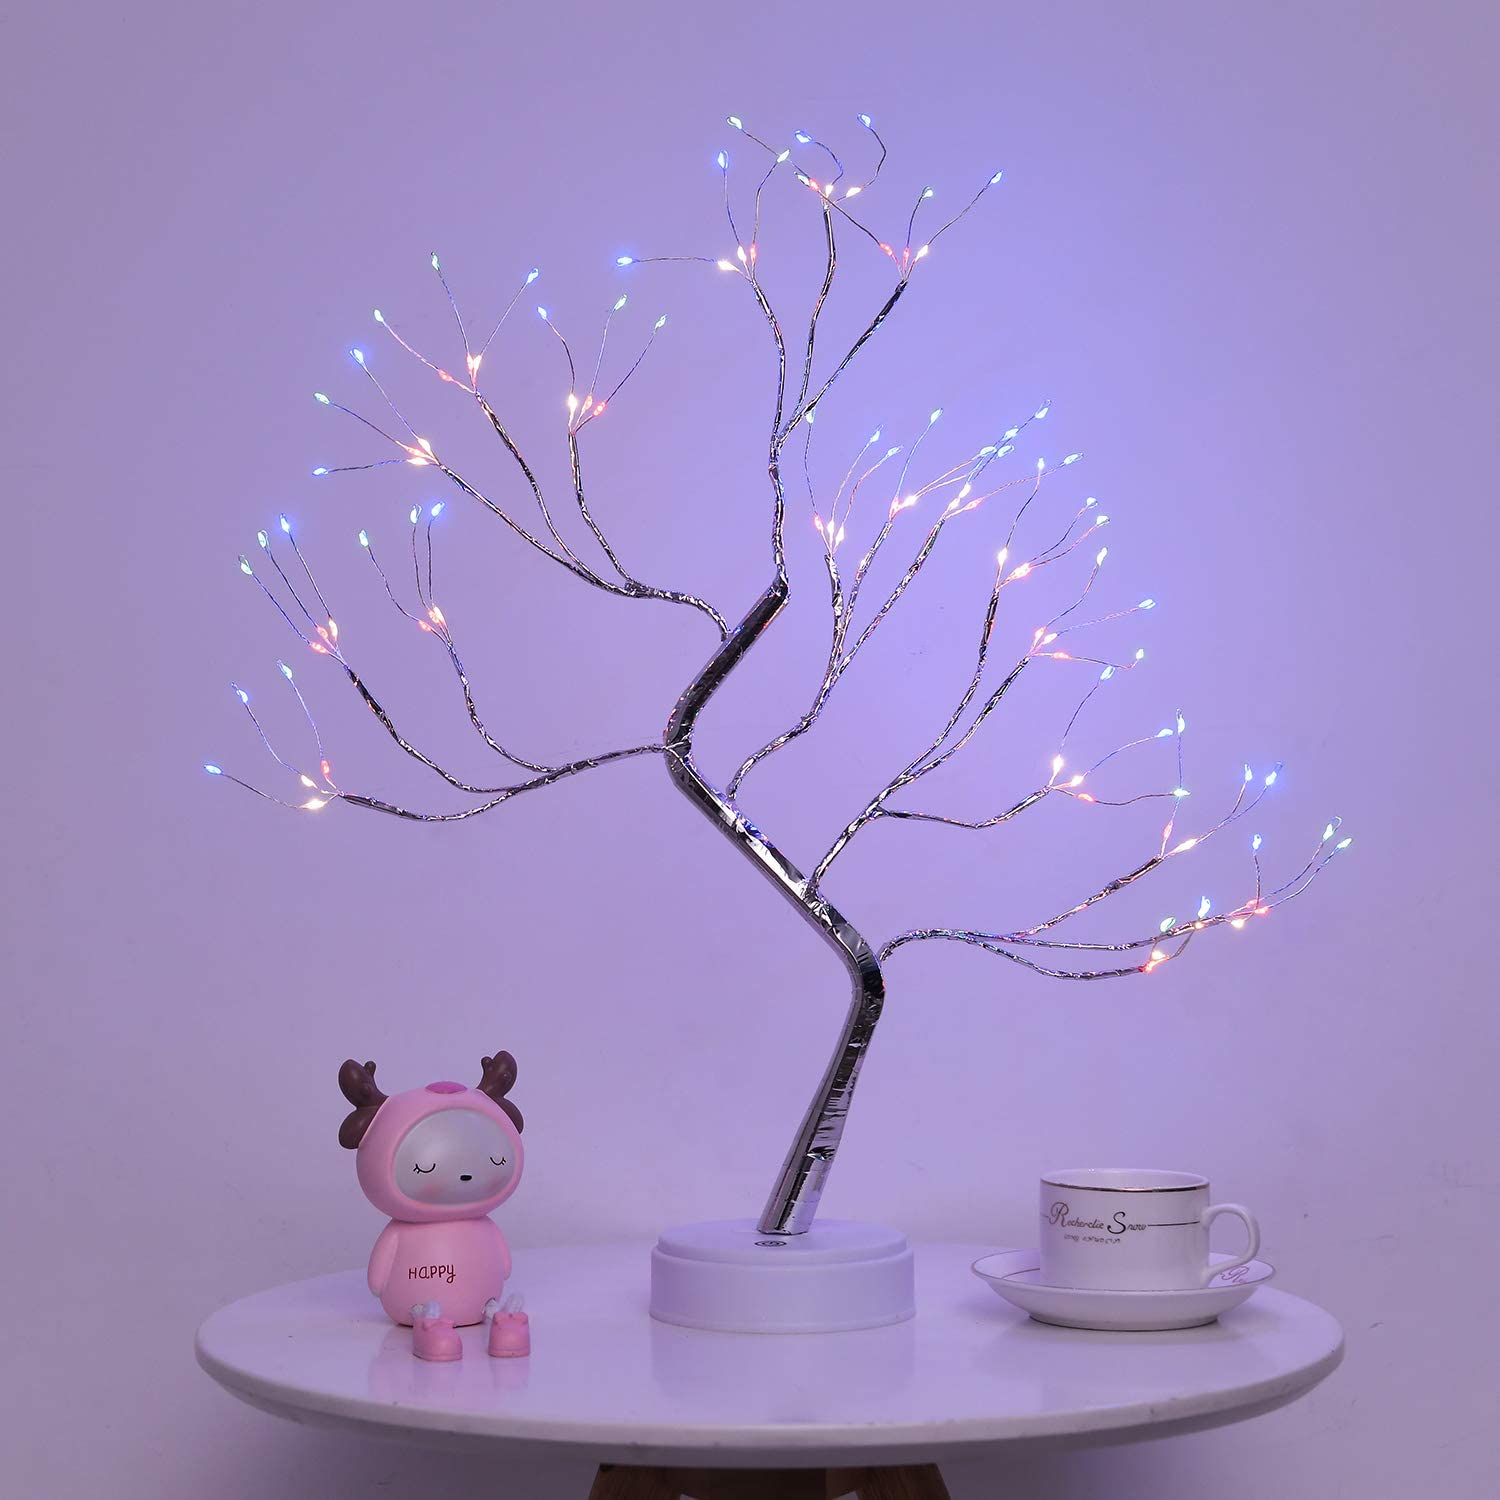 Firefly Bonsai Tree Light - 20'' Artificial Fairy Light Spirit Tree Lamp with 108 LED Lights - USB/Battery Touch Switch, Deco of Children's Room, Bedroom, Living Room, Party Wedding and Christmas